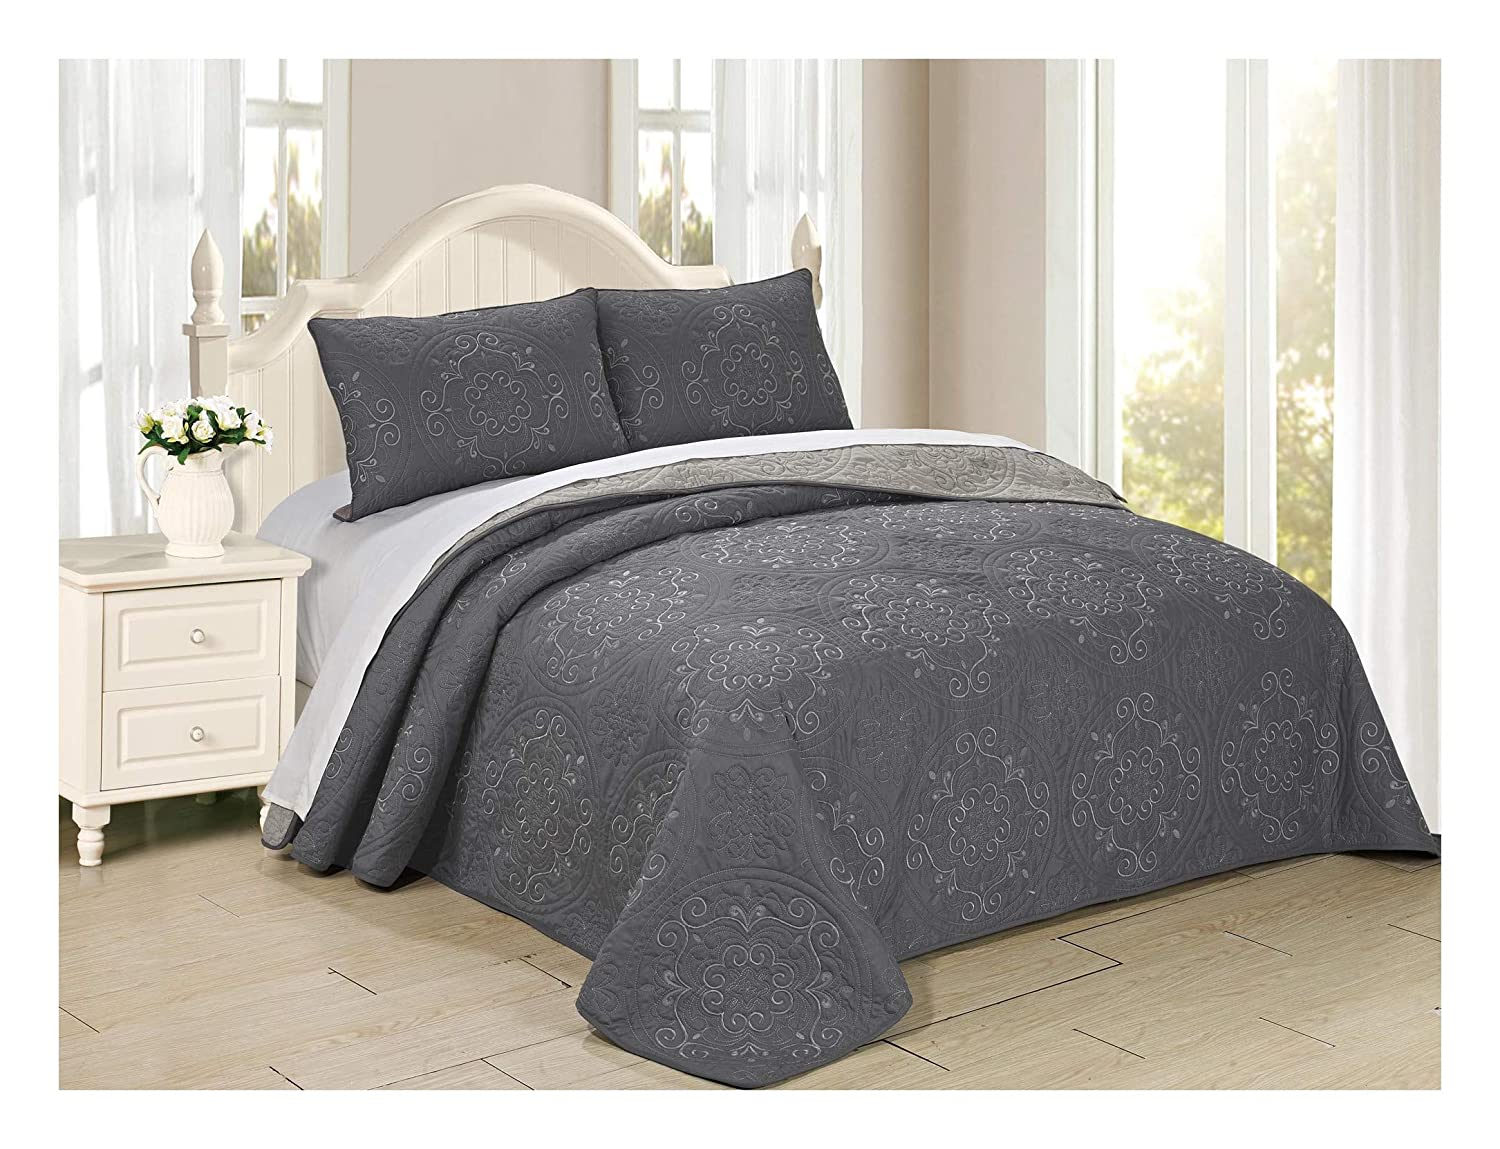 King, Navy//Silver All American Collection 3 Piece Circle Embroidered Bedspread and Pillow Sham Set